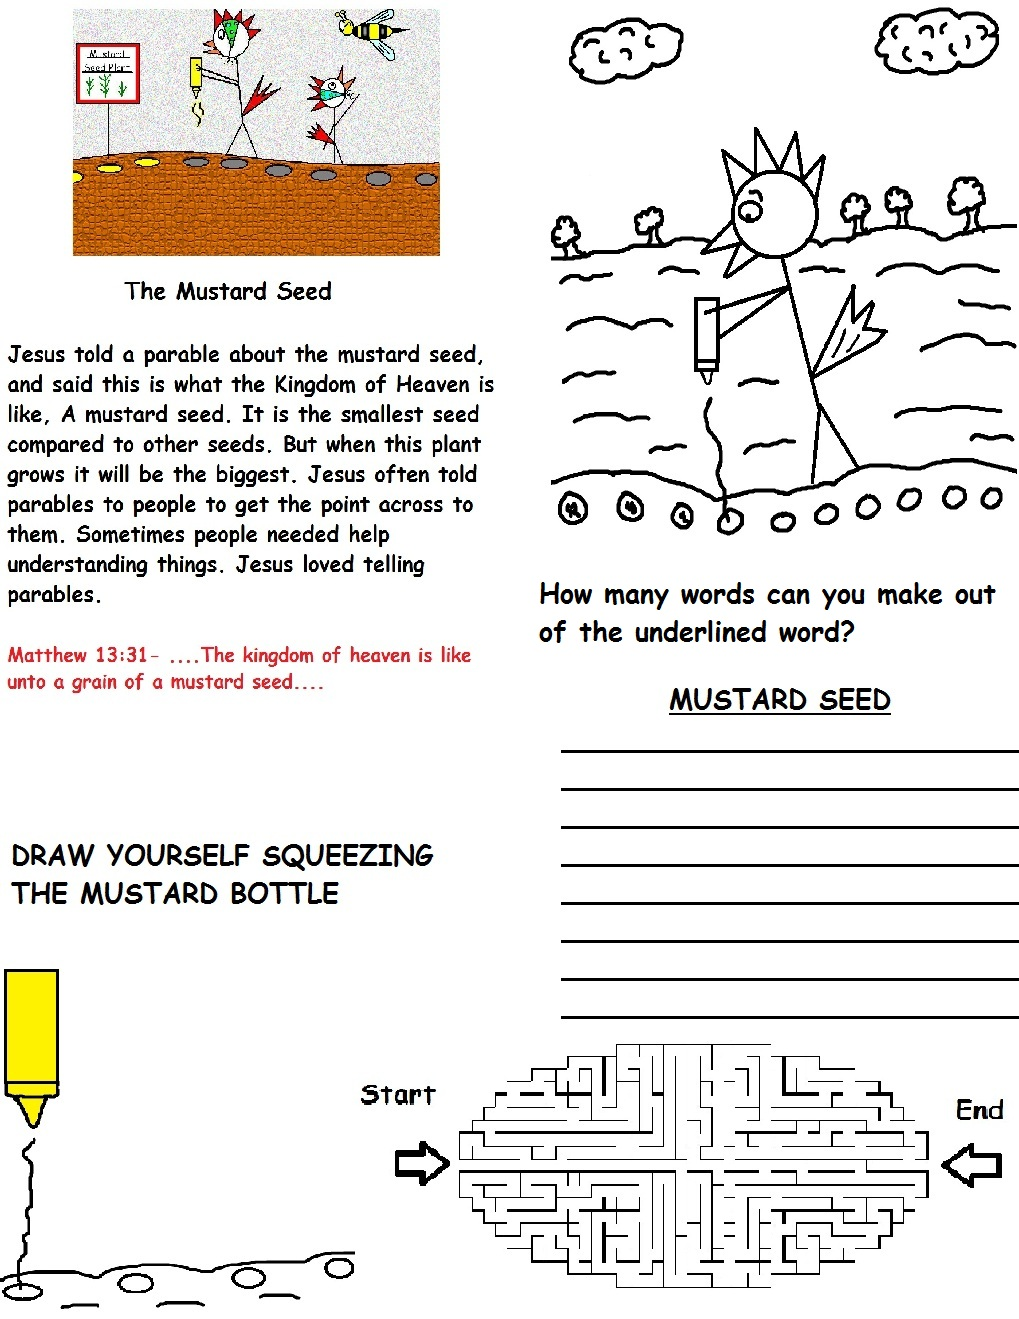 AWESOME – parable of mustard seed activity sheet wild card